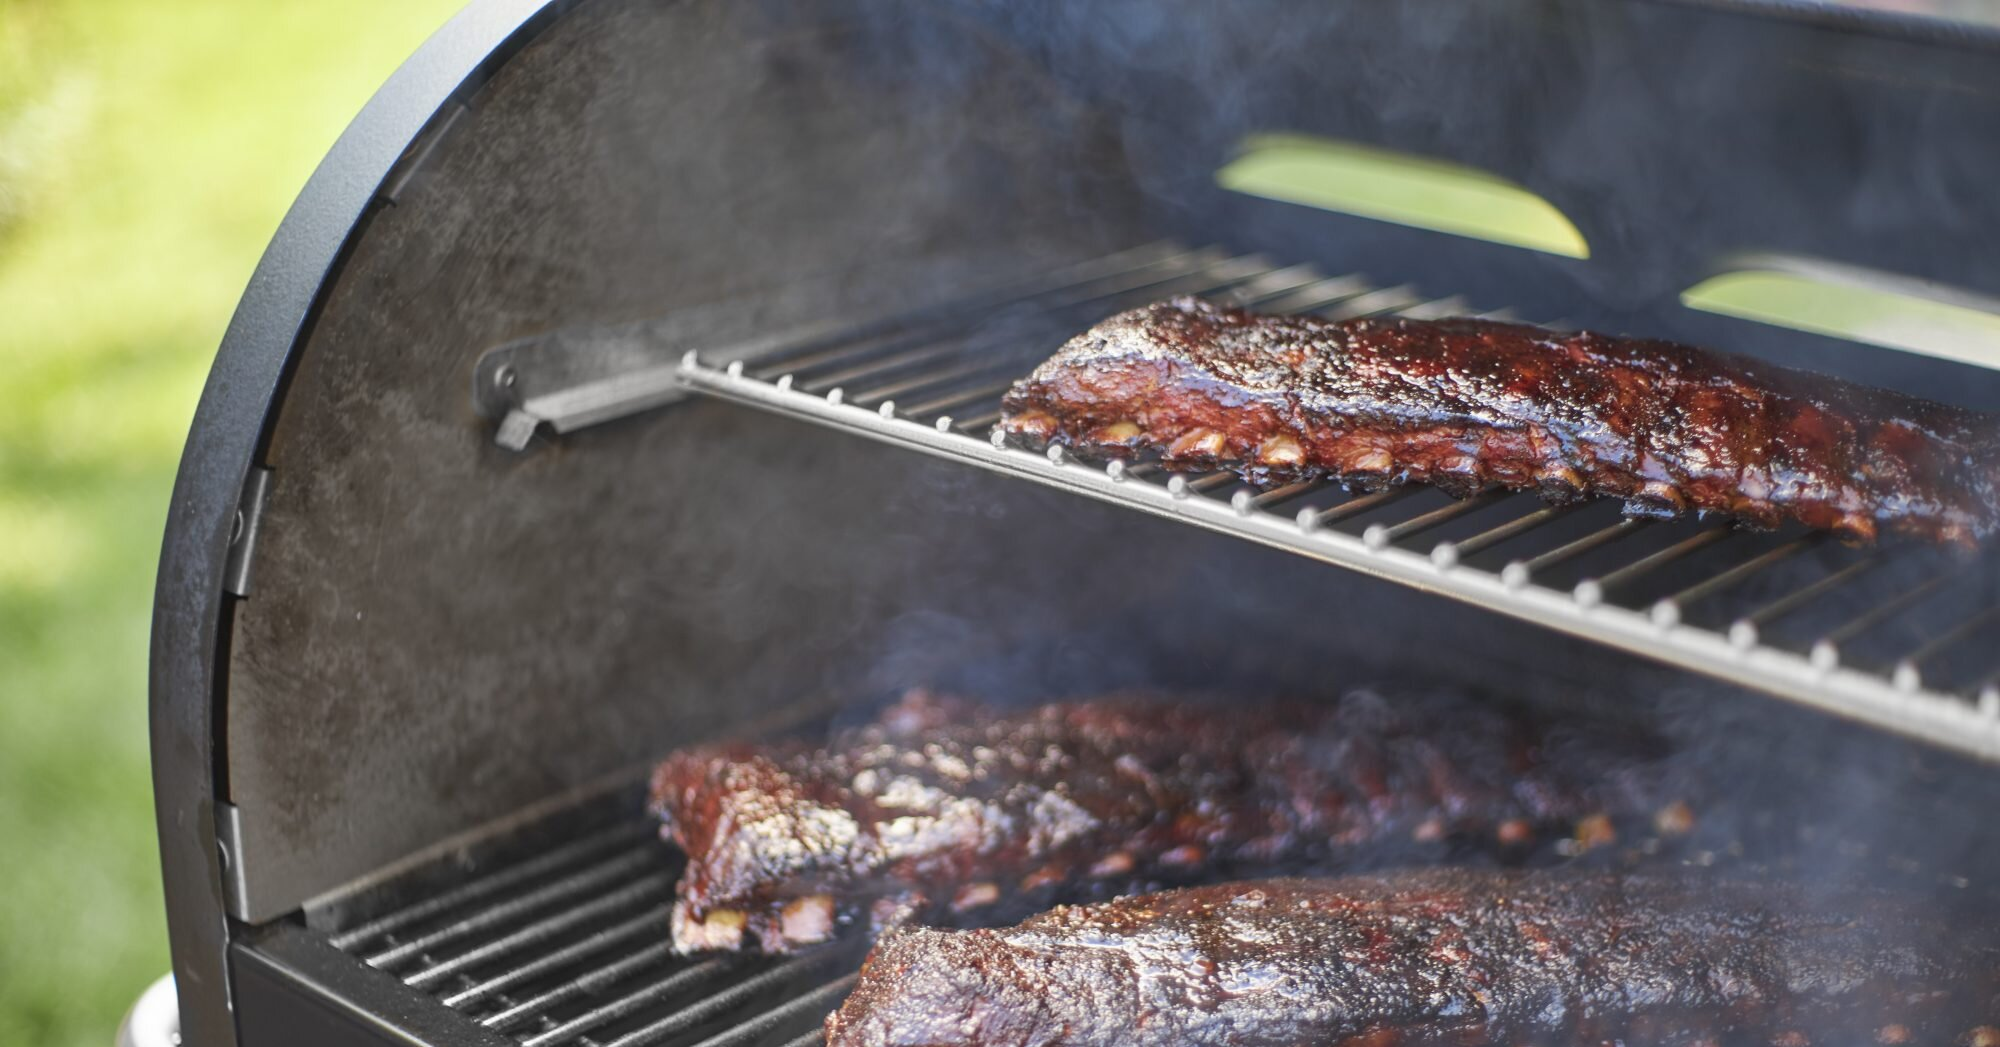 How to Use a Smoker, According to an Expert